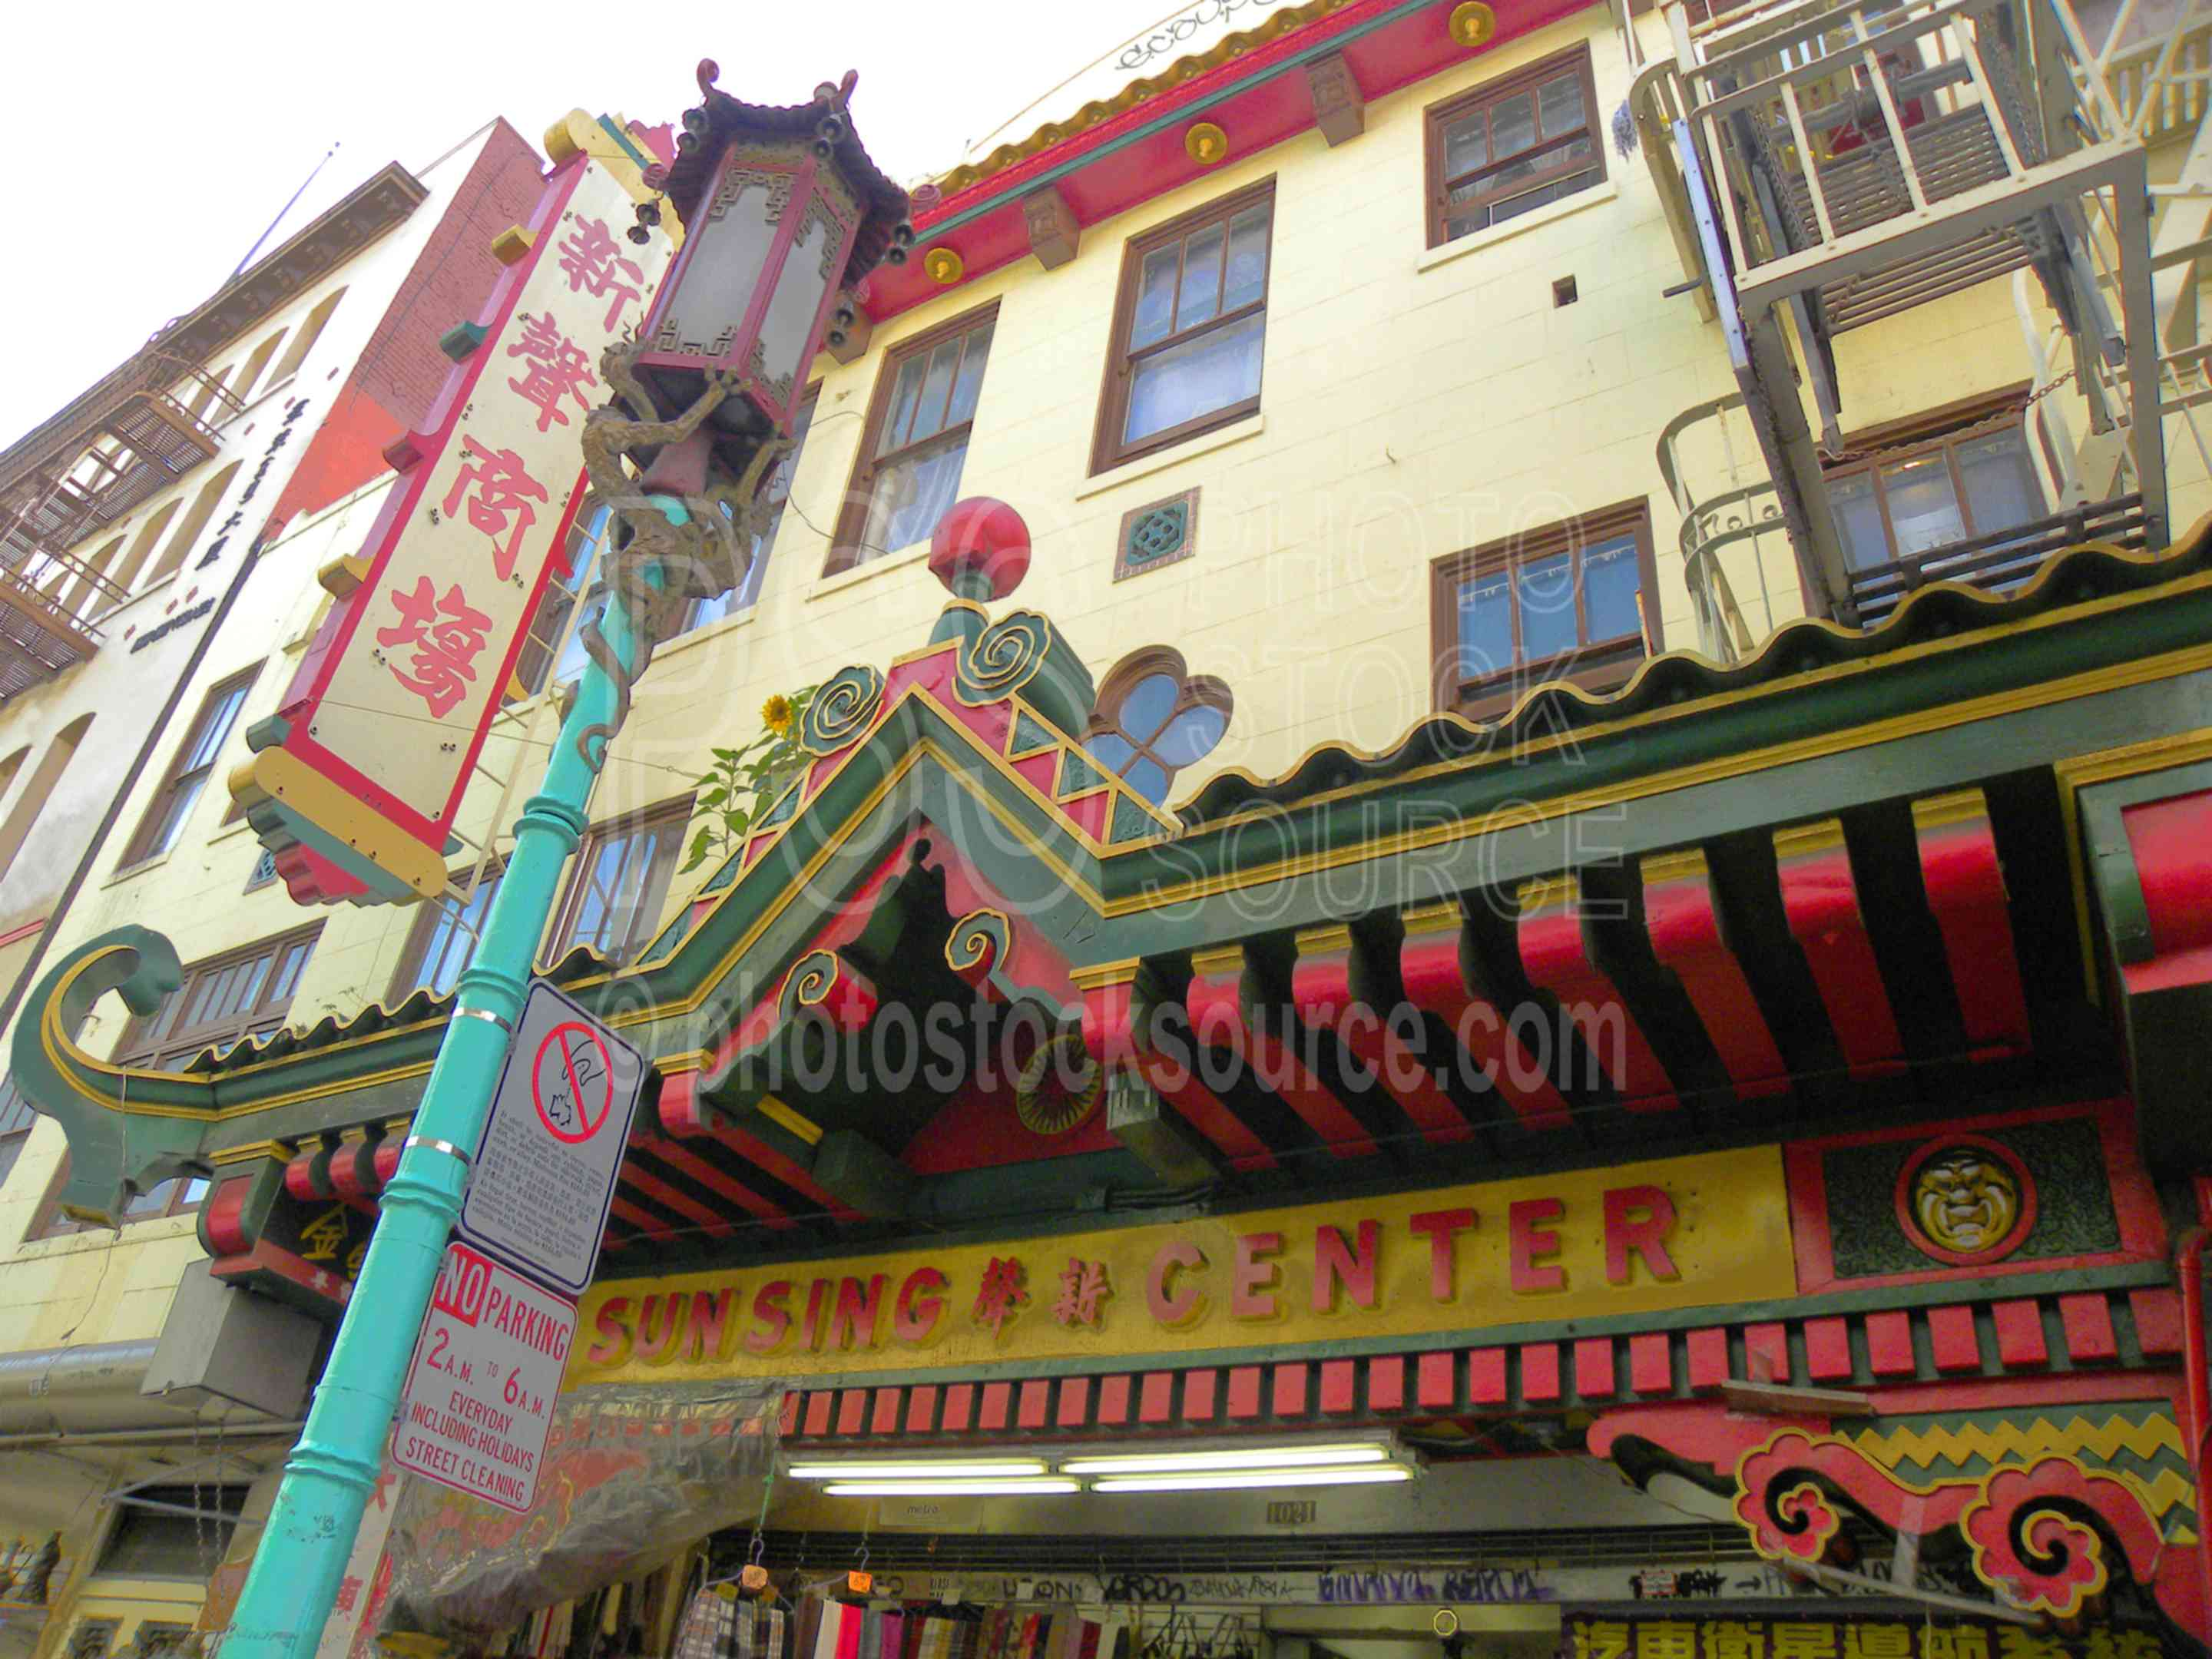 Sun Sing Theater,chinatown,ethnic,theater,theatre,chinese architecture